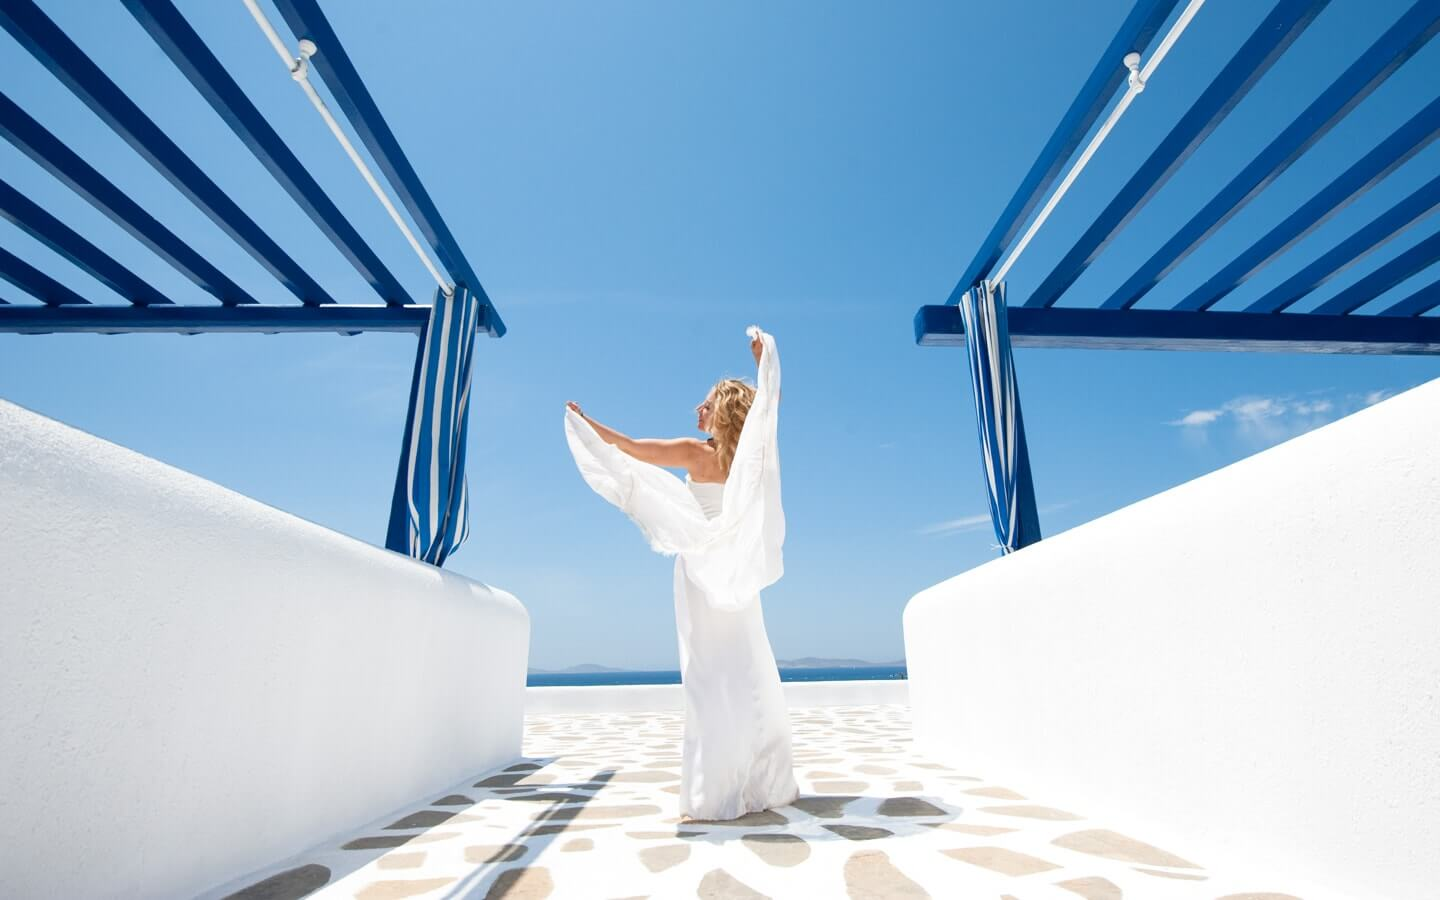 Woman dances in the sun at the cycladic design San Marco luxury beach hotel in Houlakia Bay, Mykonos